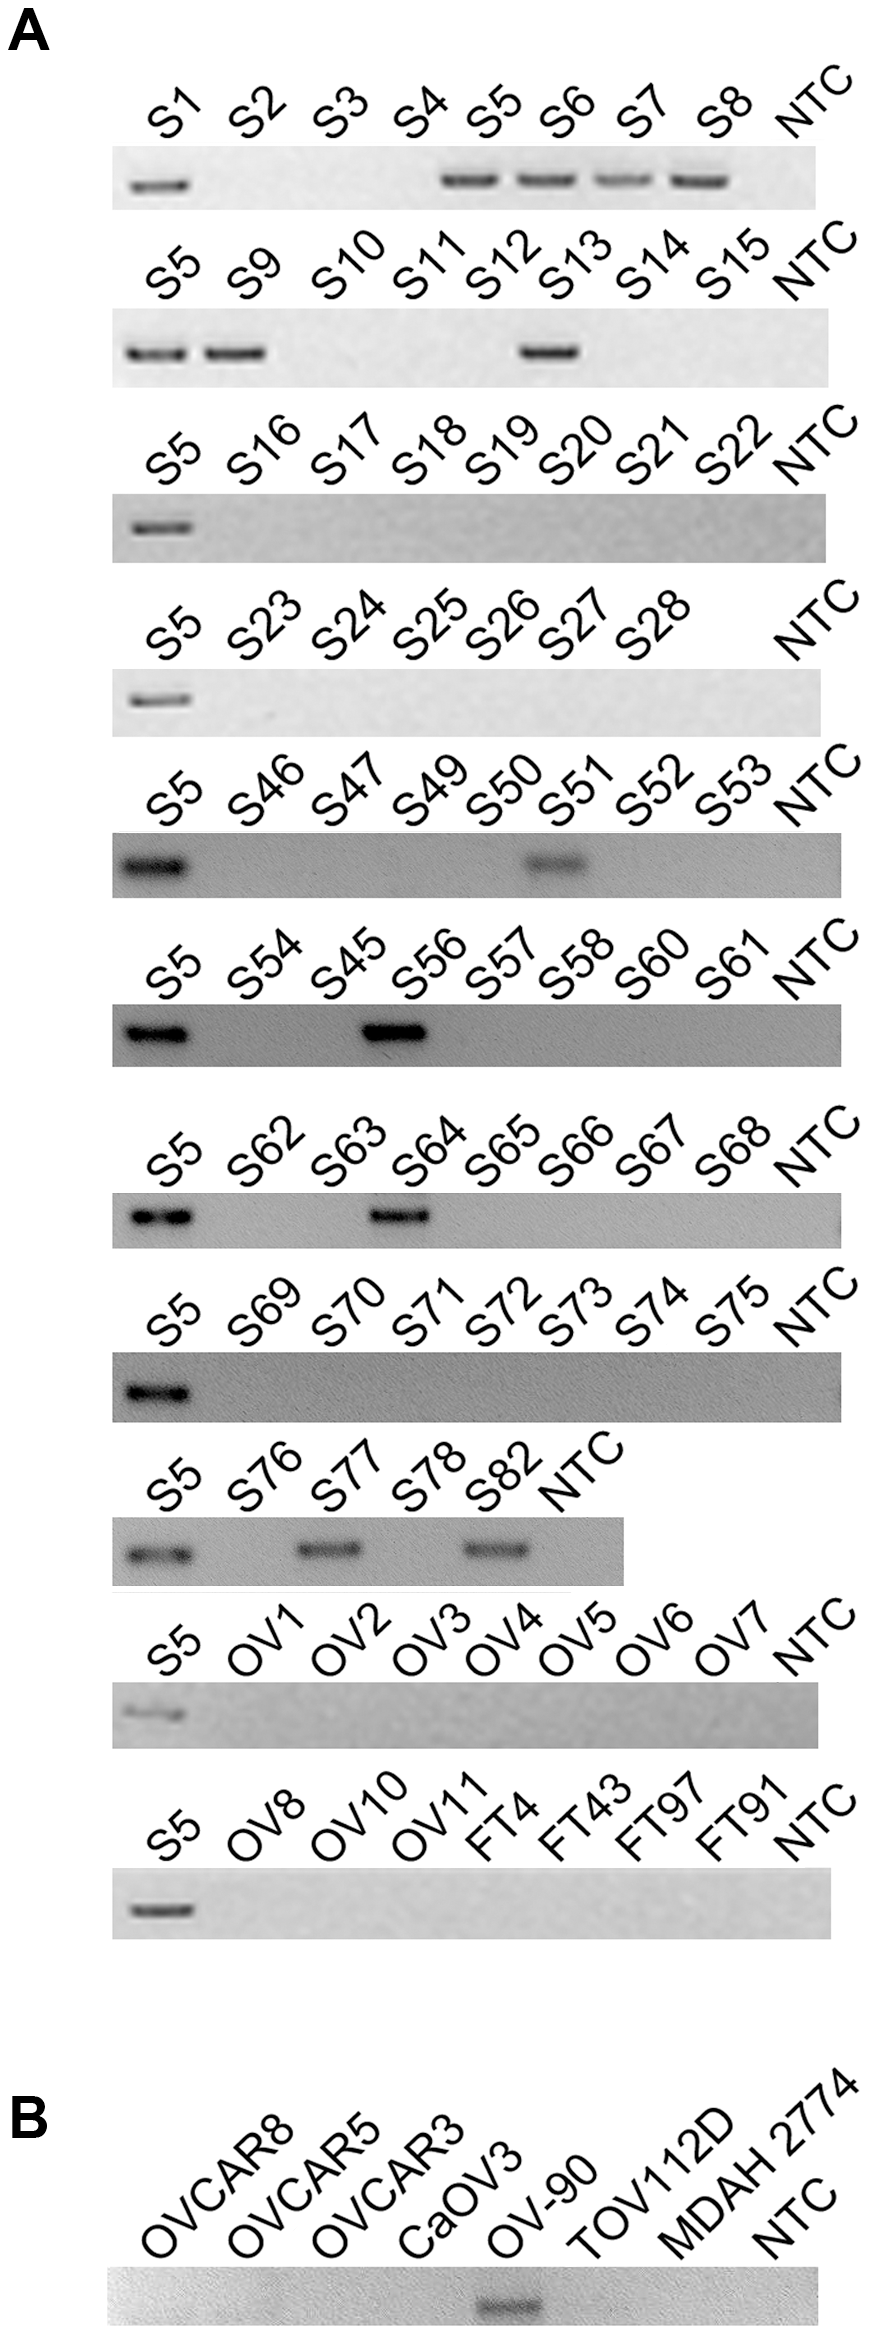 <i>CDKN2D-WDFY2</i> is a highly frequent fusion transcript in HG-SC cancer samples and cell line.